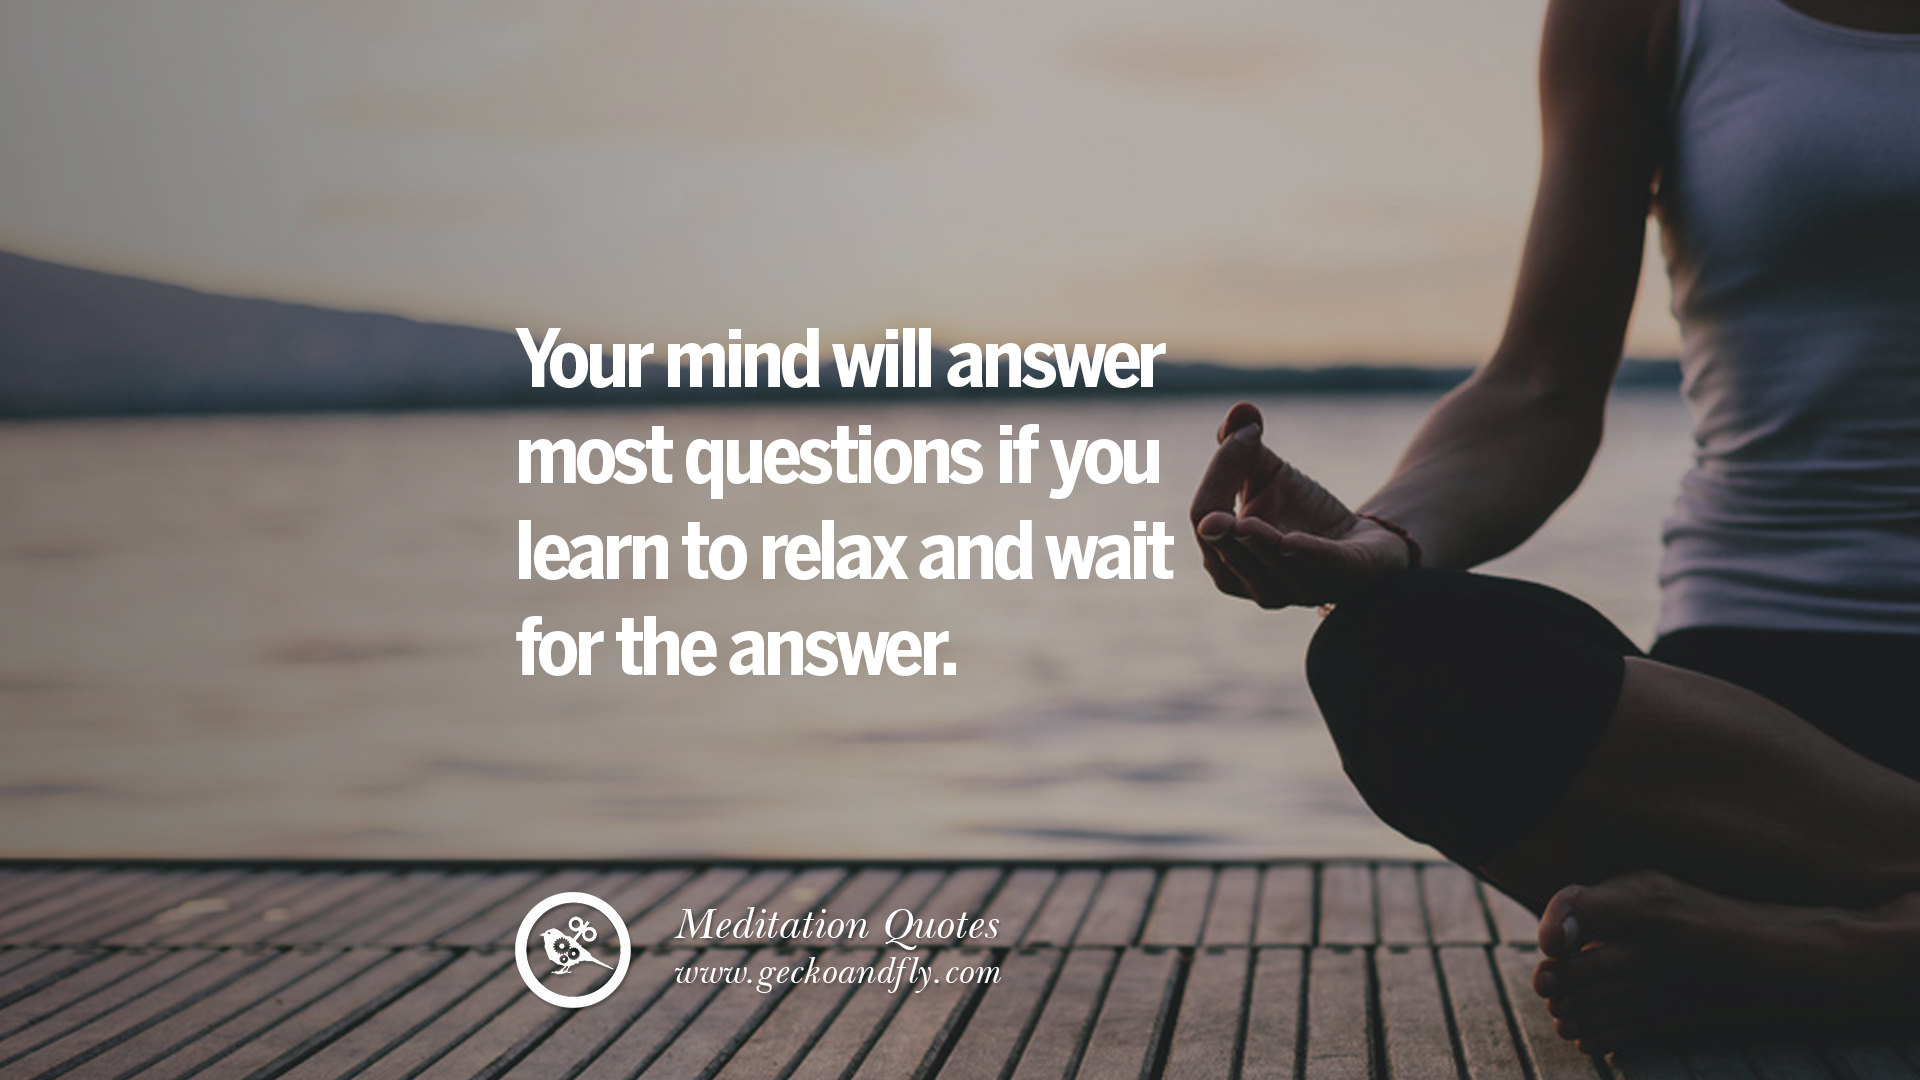 Free Your Mind Quotes 36 Famous Quotes On Mindfulness Meditation For Yoga Sleeping And